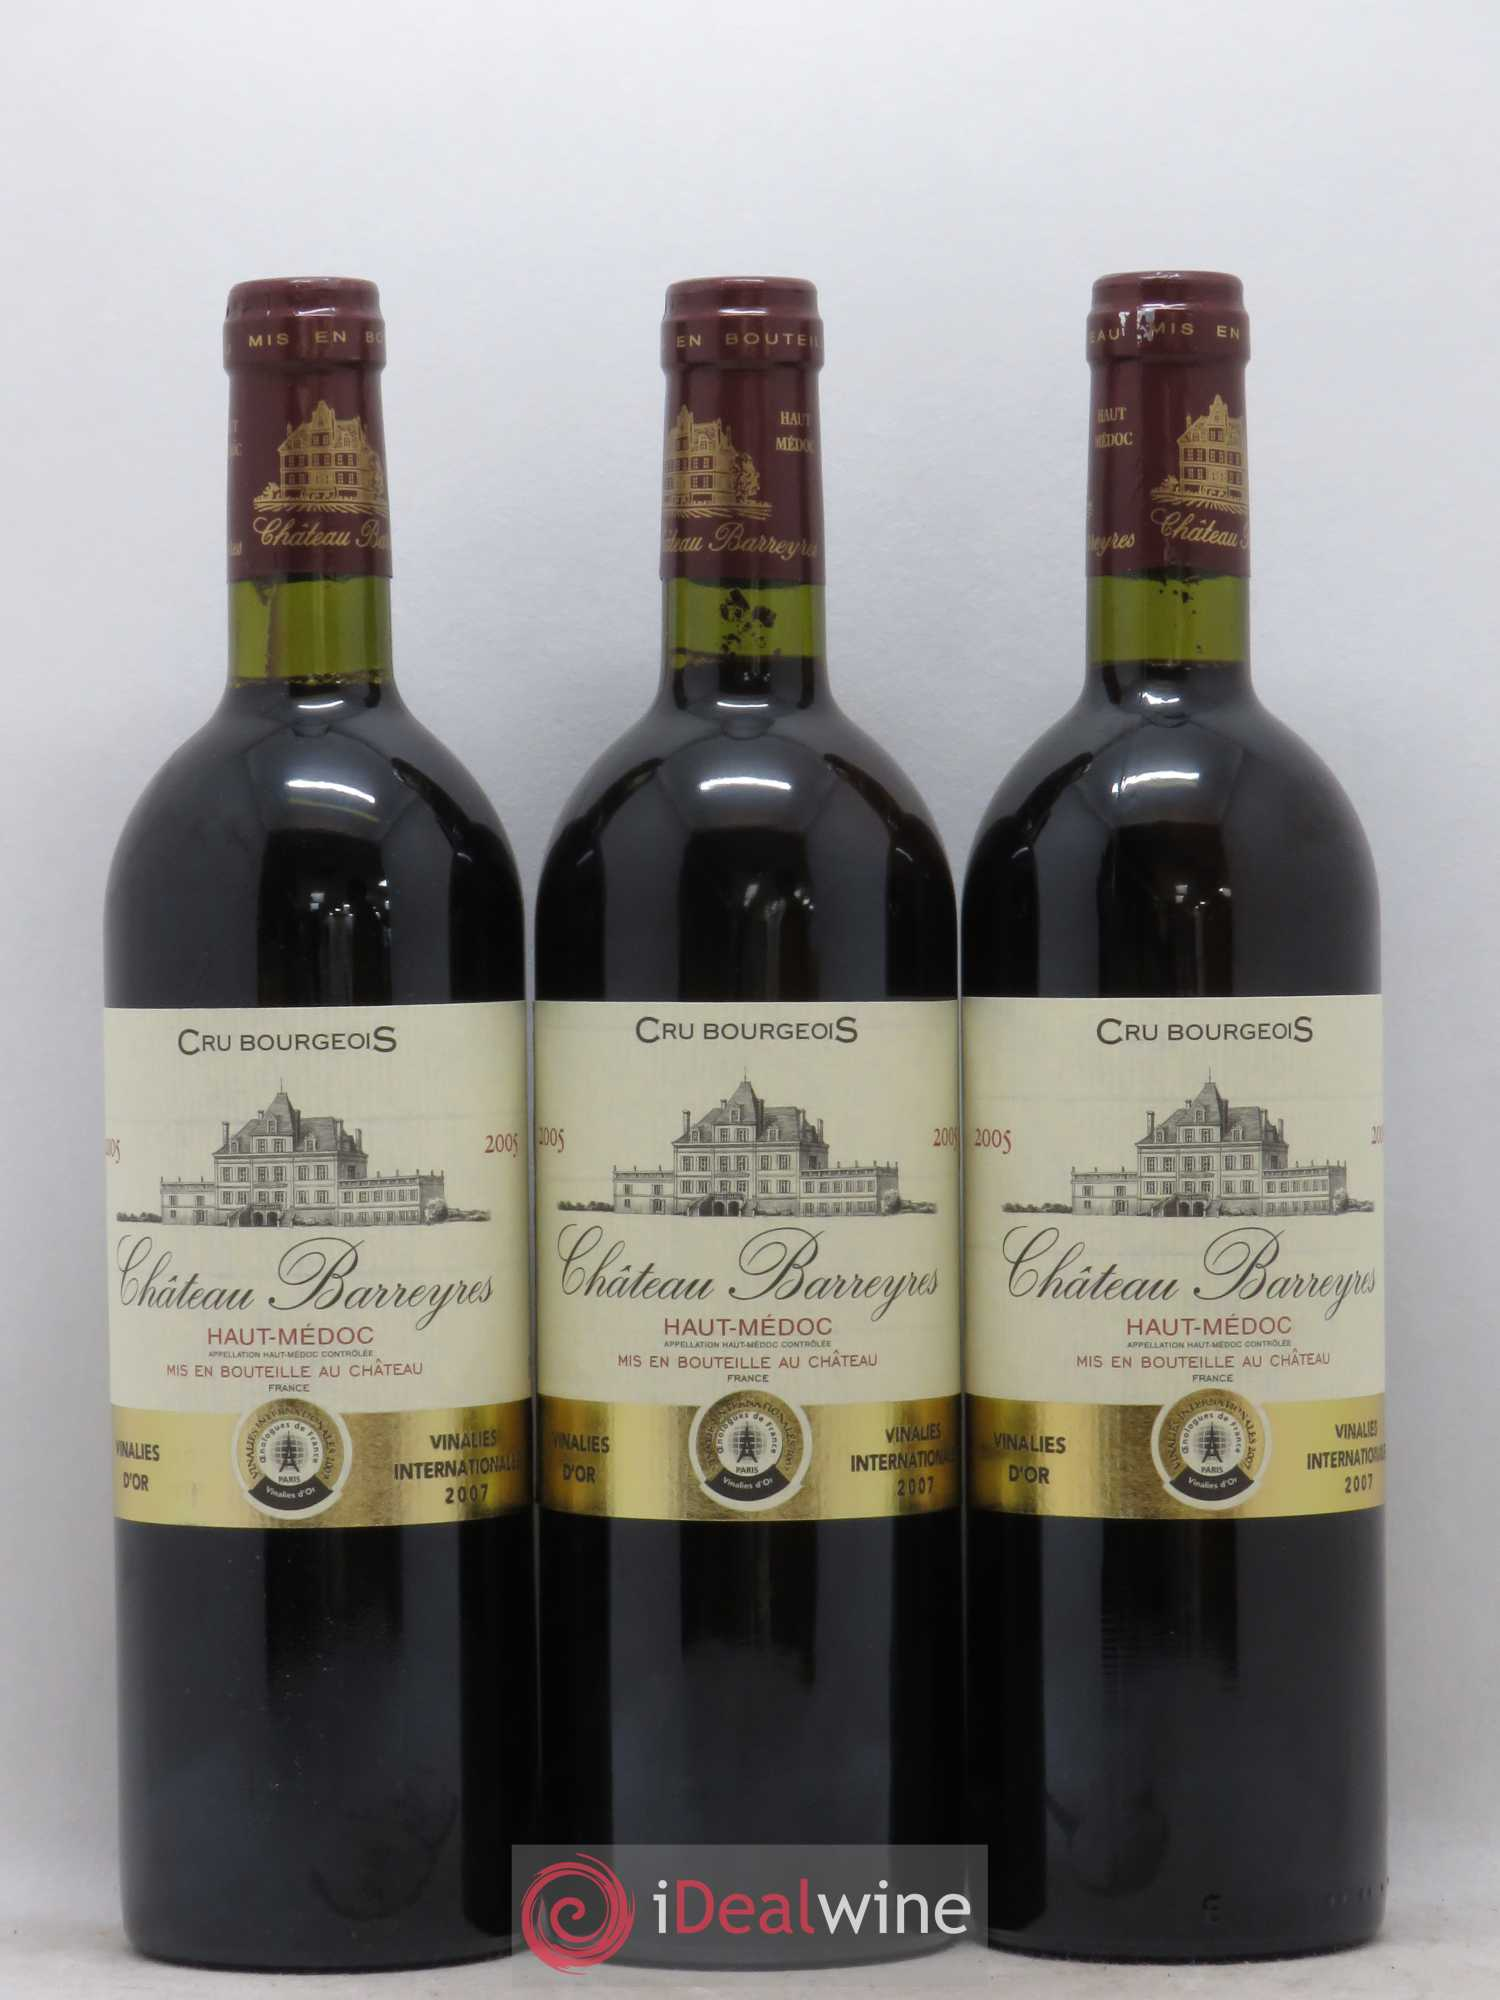 Château Barreyres Cru Bourgeois  2005 - Lot of 3 Bottles